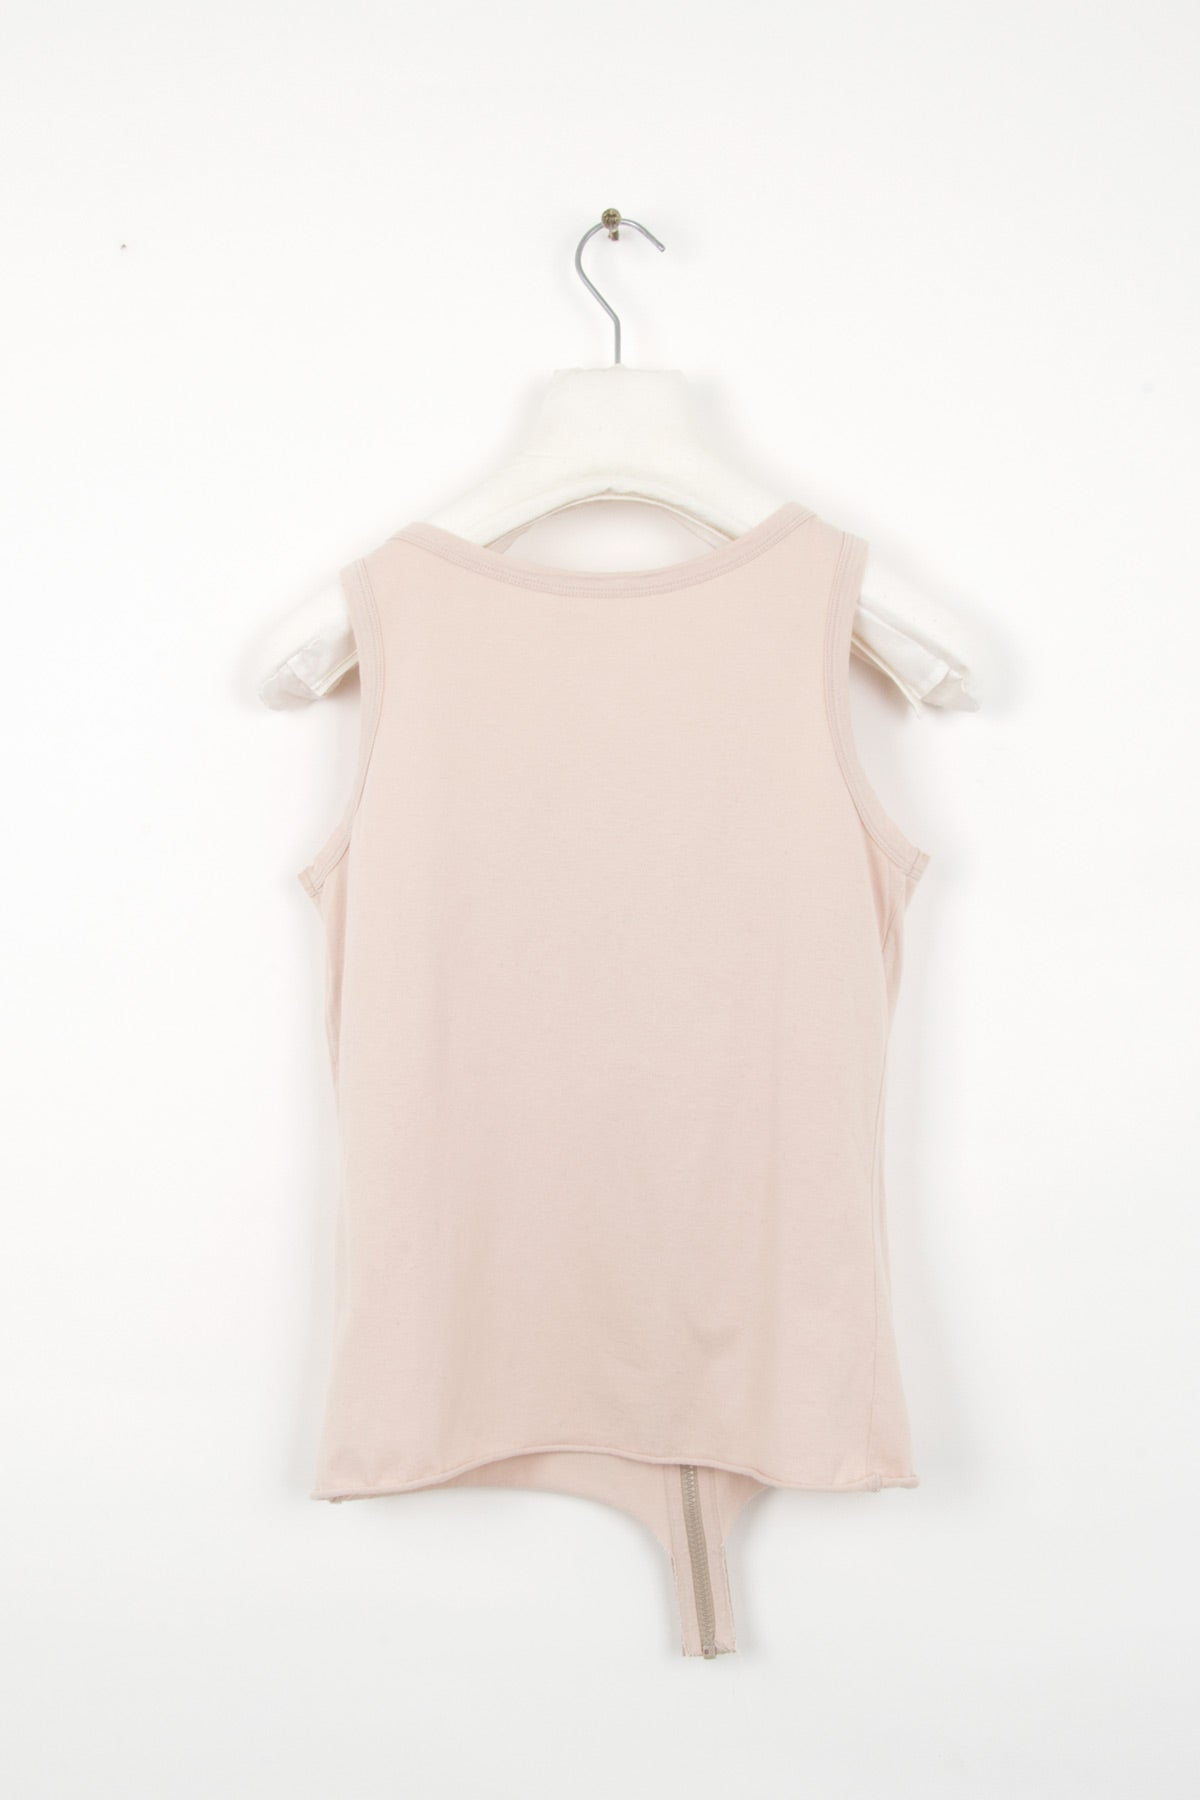 2003 S/S TOP WITH FRONT ZIPPER IN COTTON